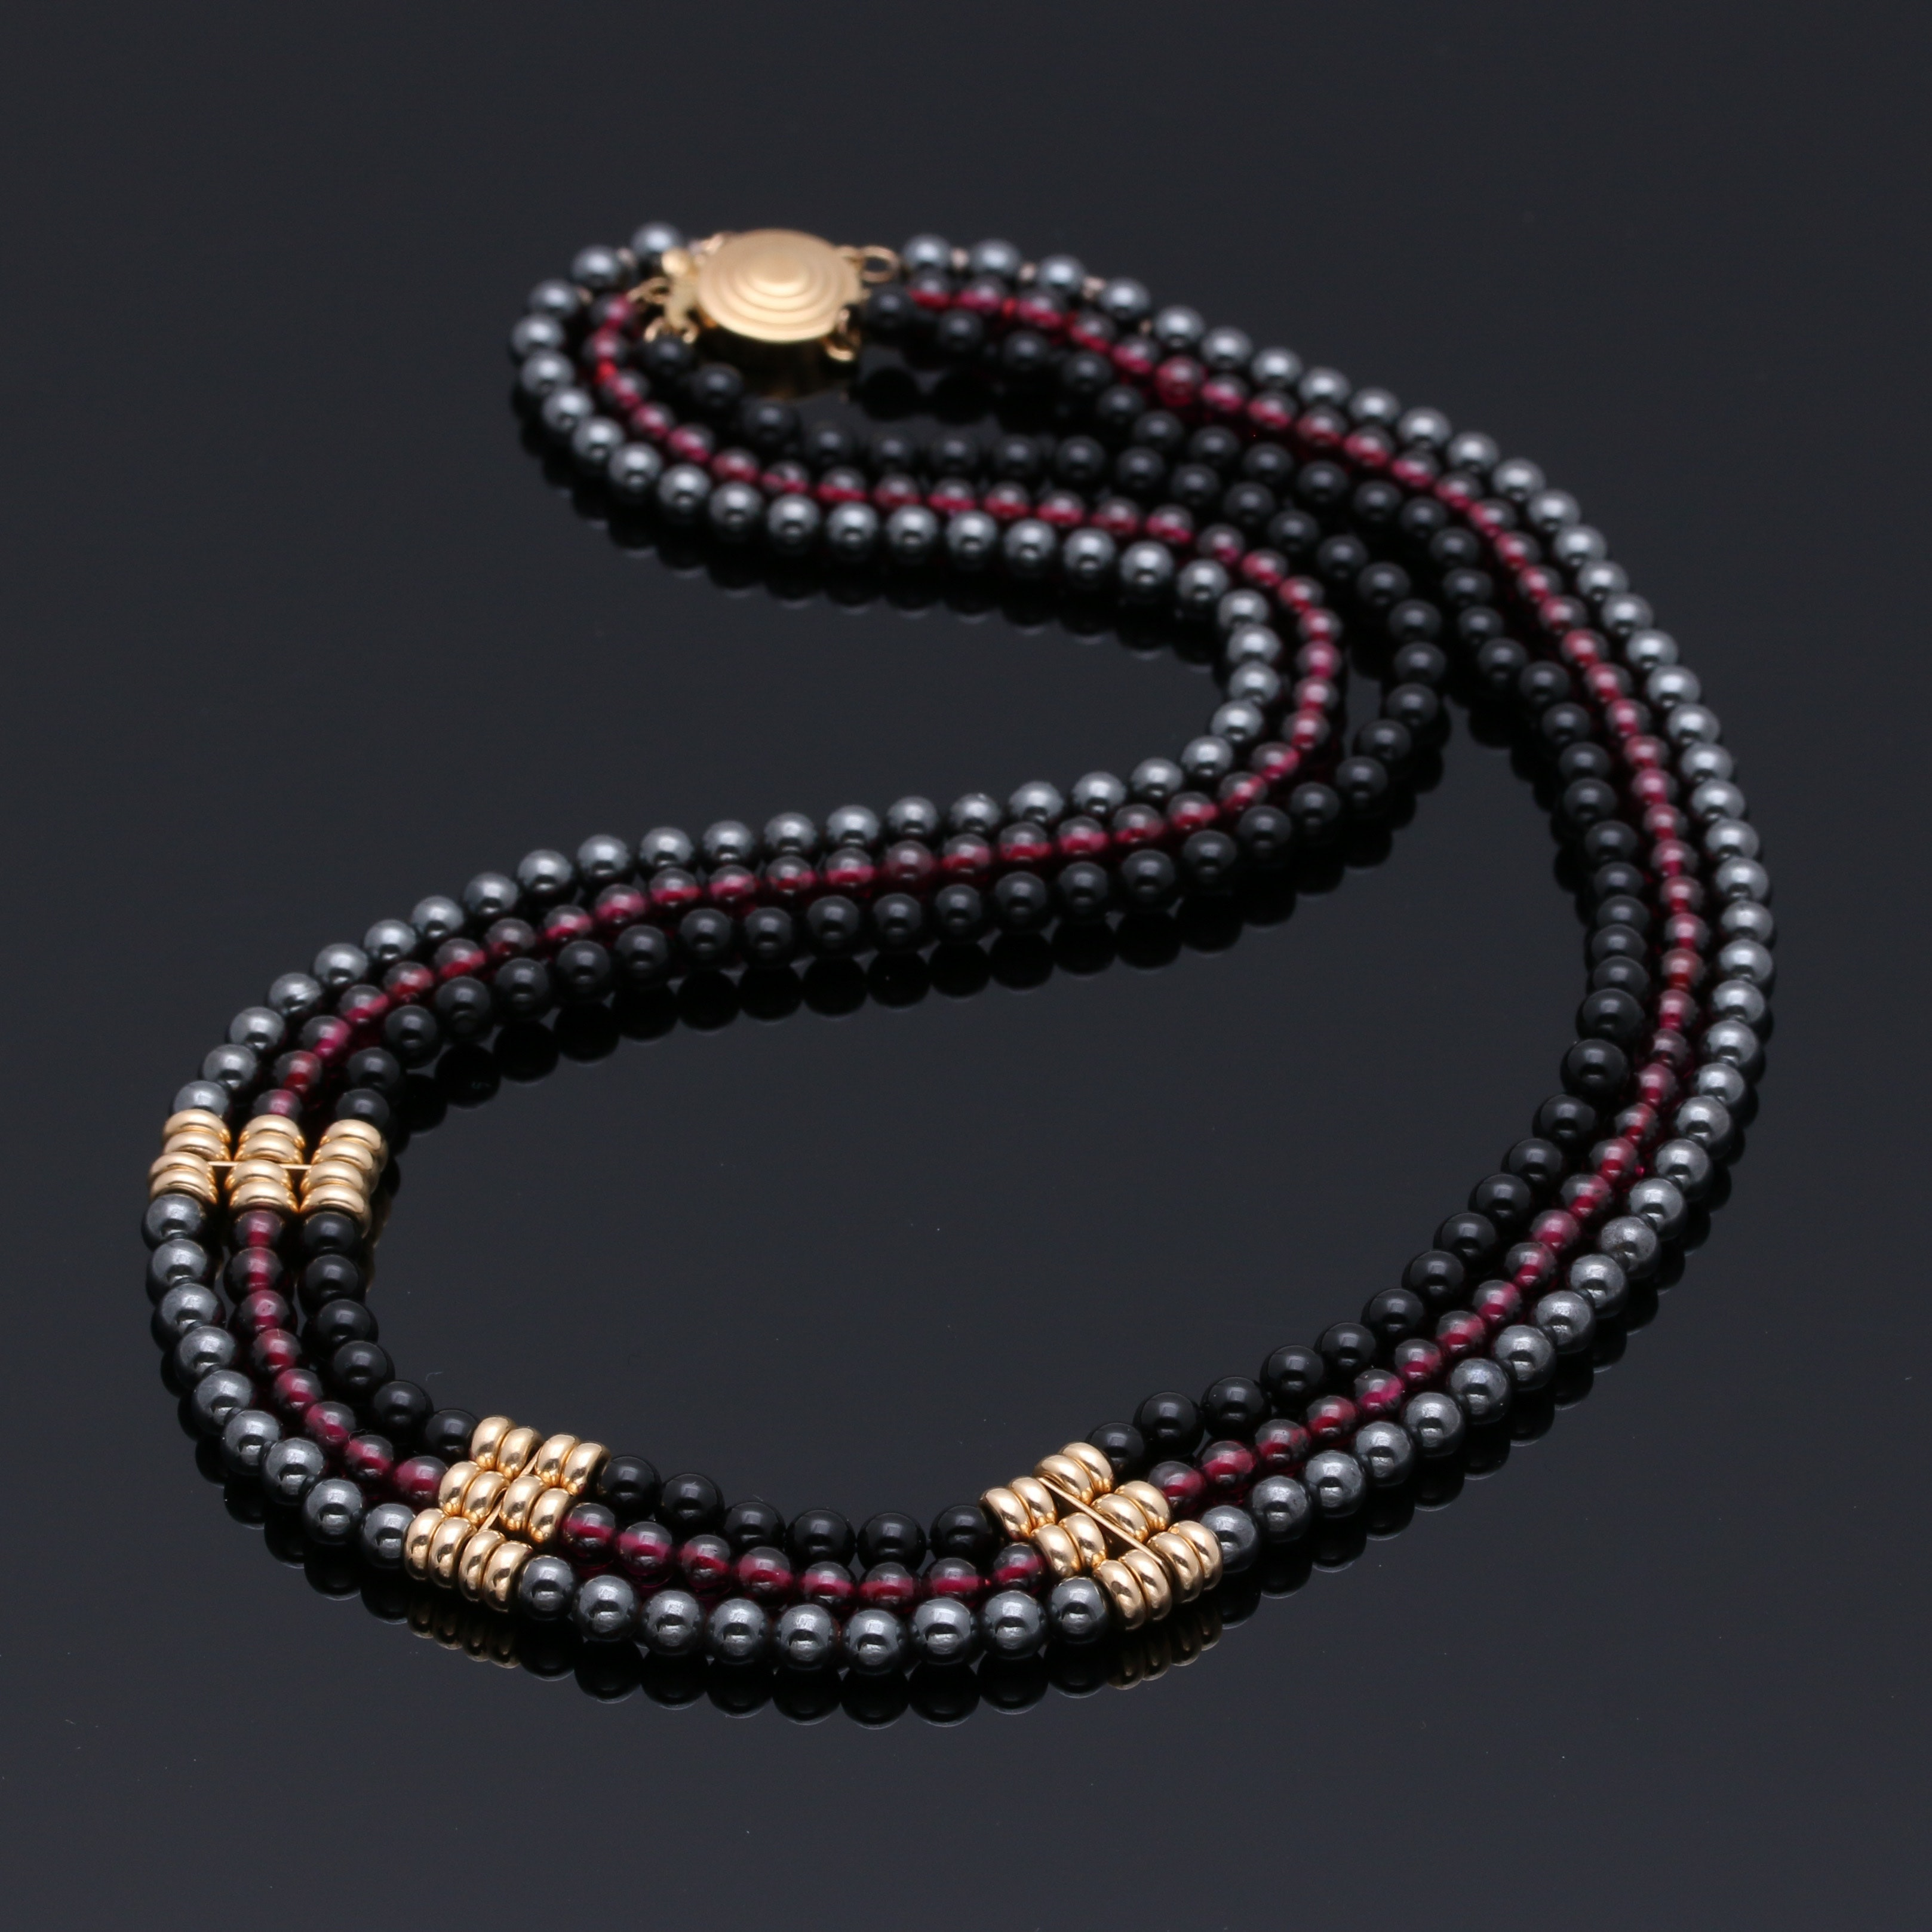 Gemstone Beaded Necklace with 14K Gold Findings